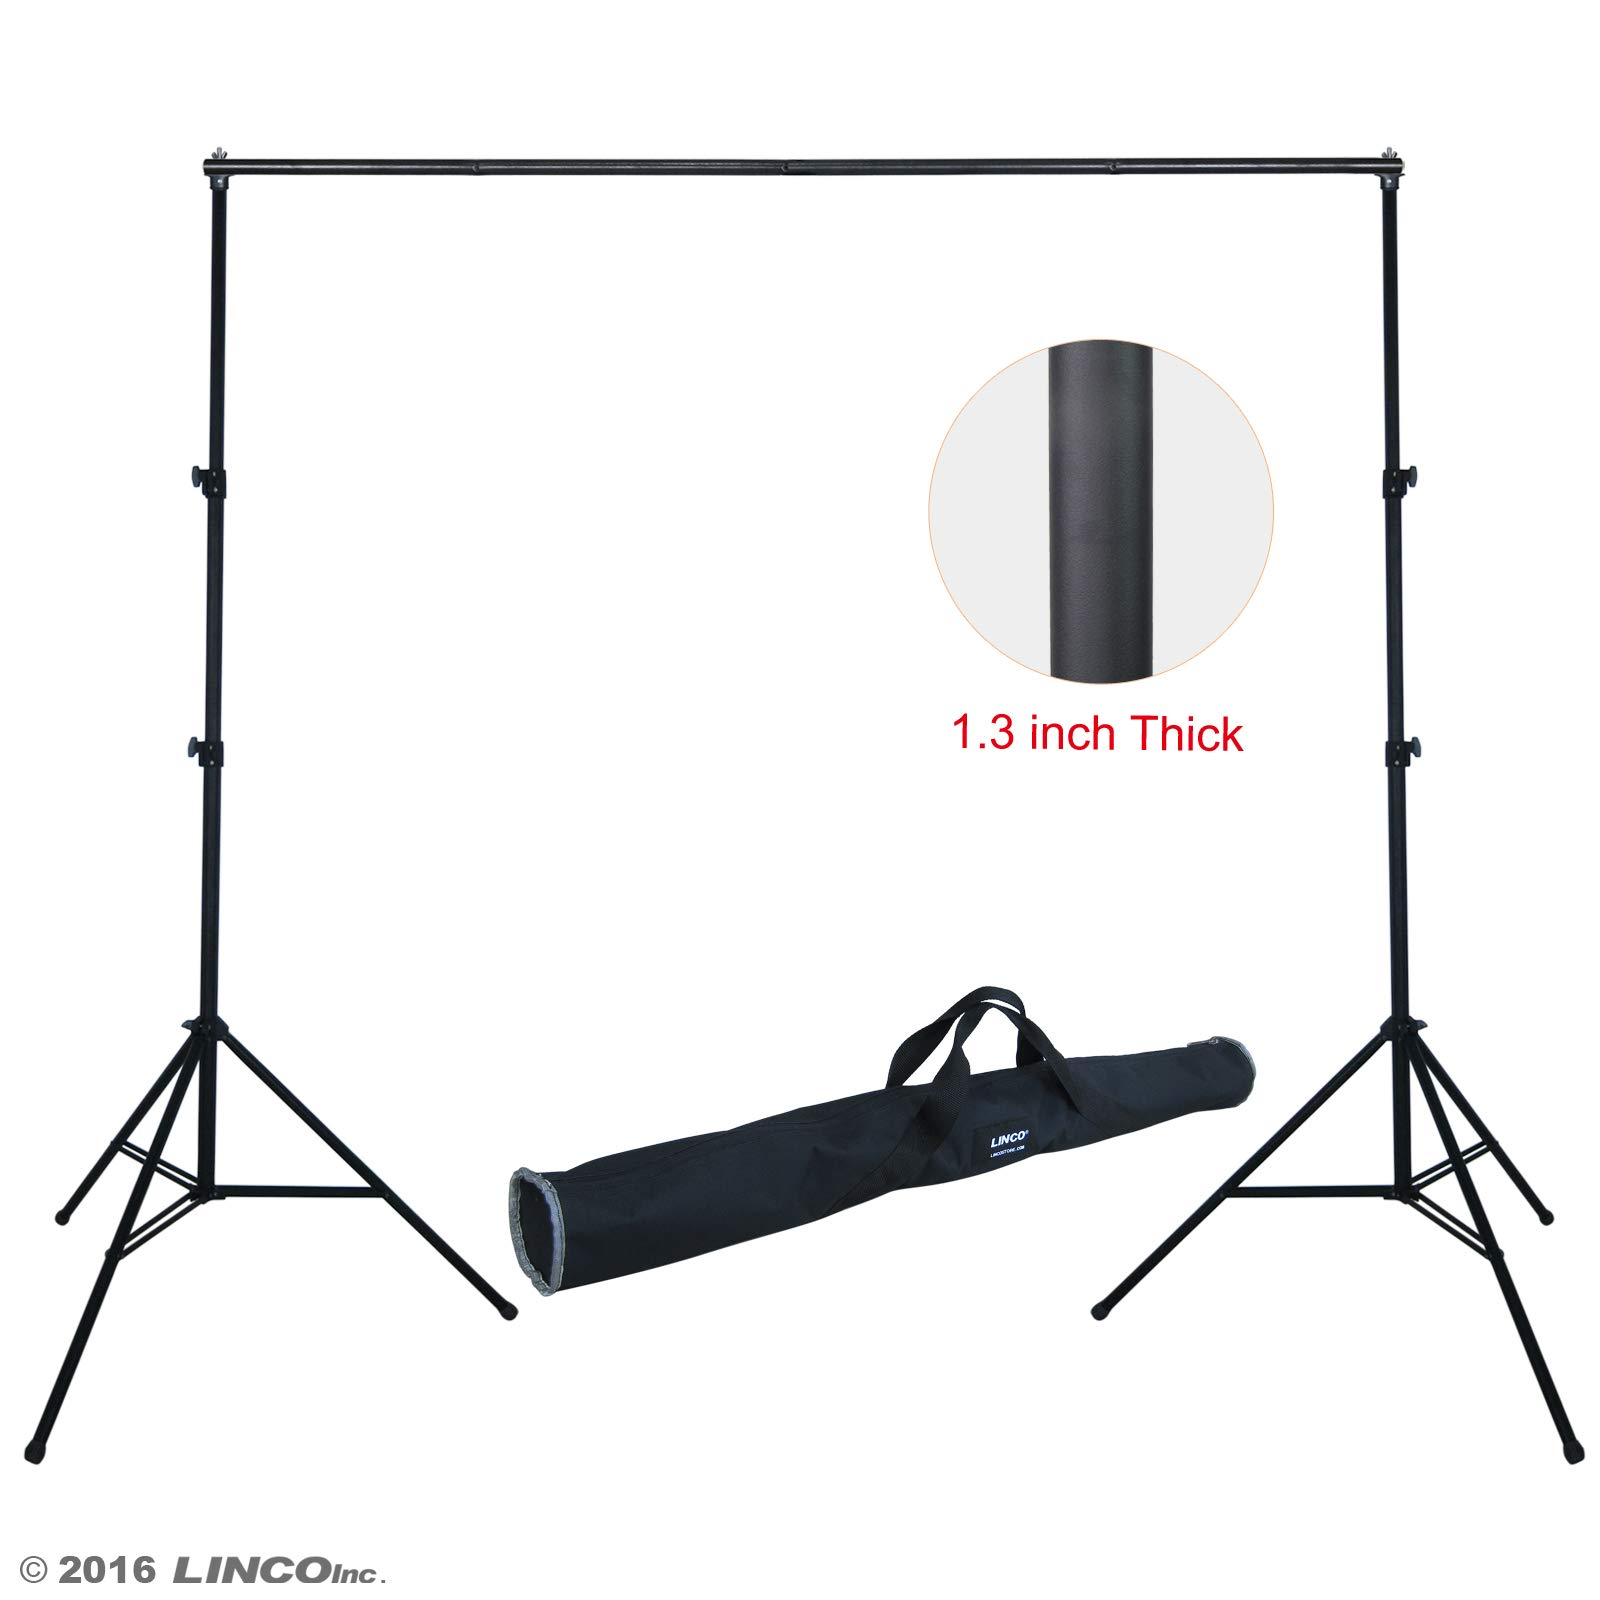 Linco Lincostore Photo Backdrop Stand 9x10 ft Heavy Duty Photography Background Support System Kit 4164 by Linco (Image #1)